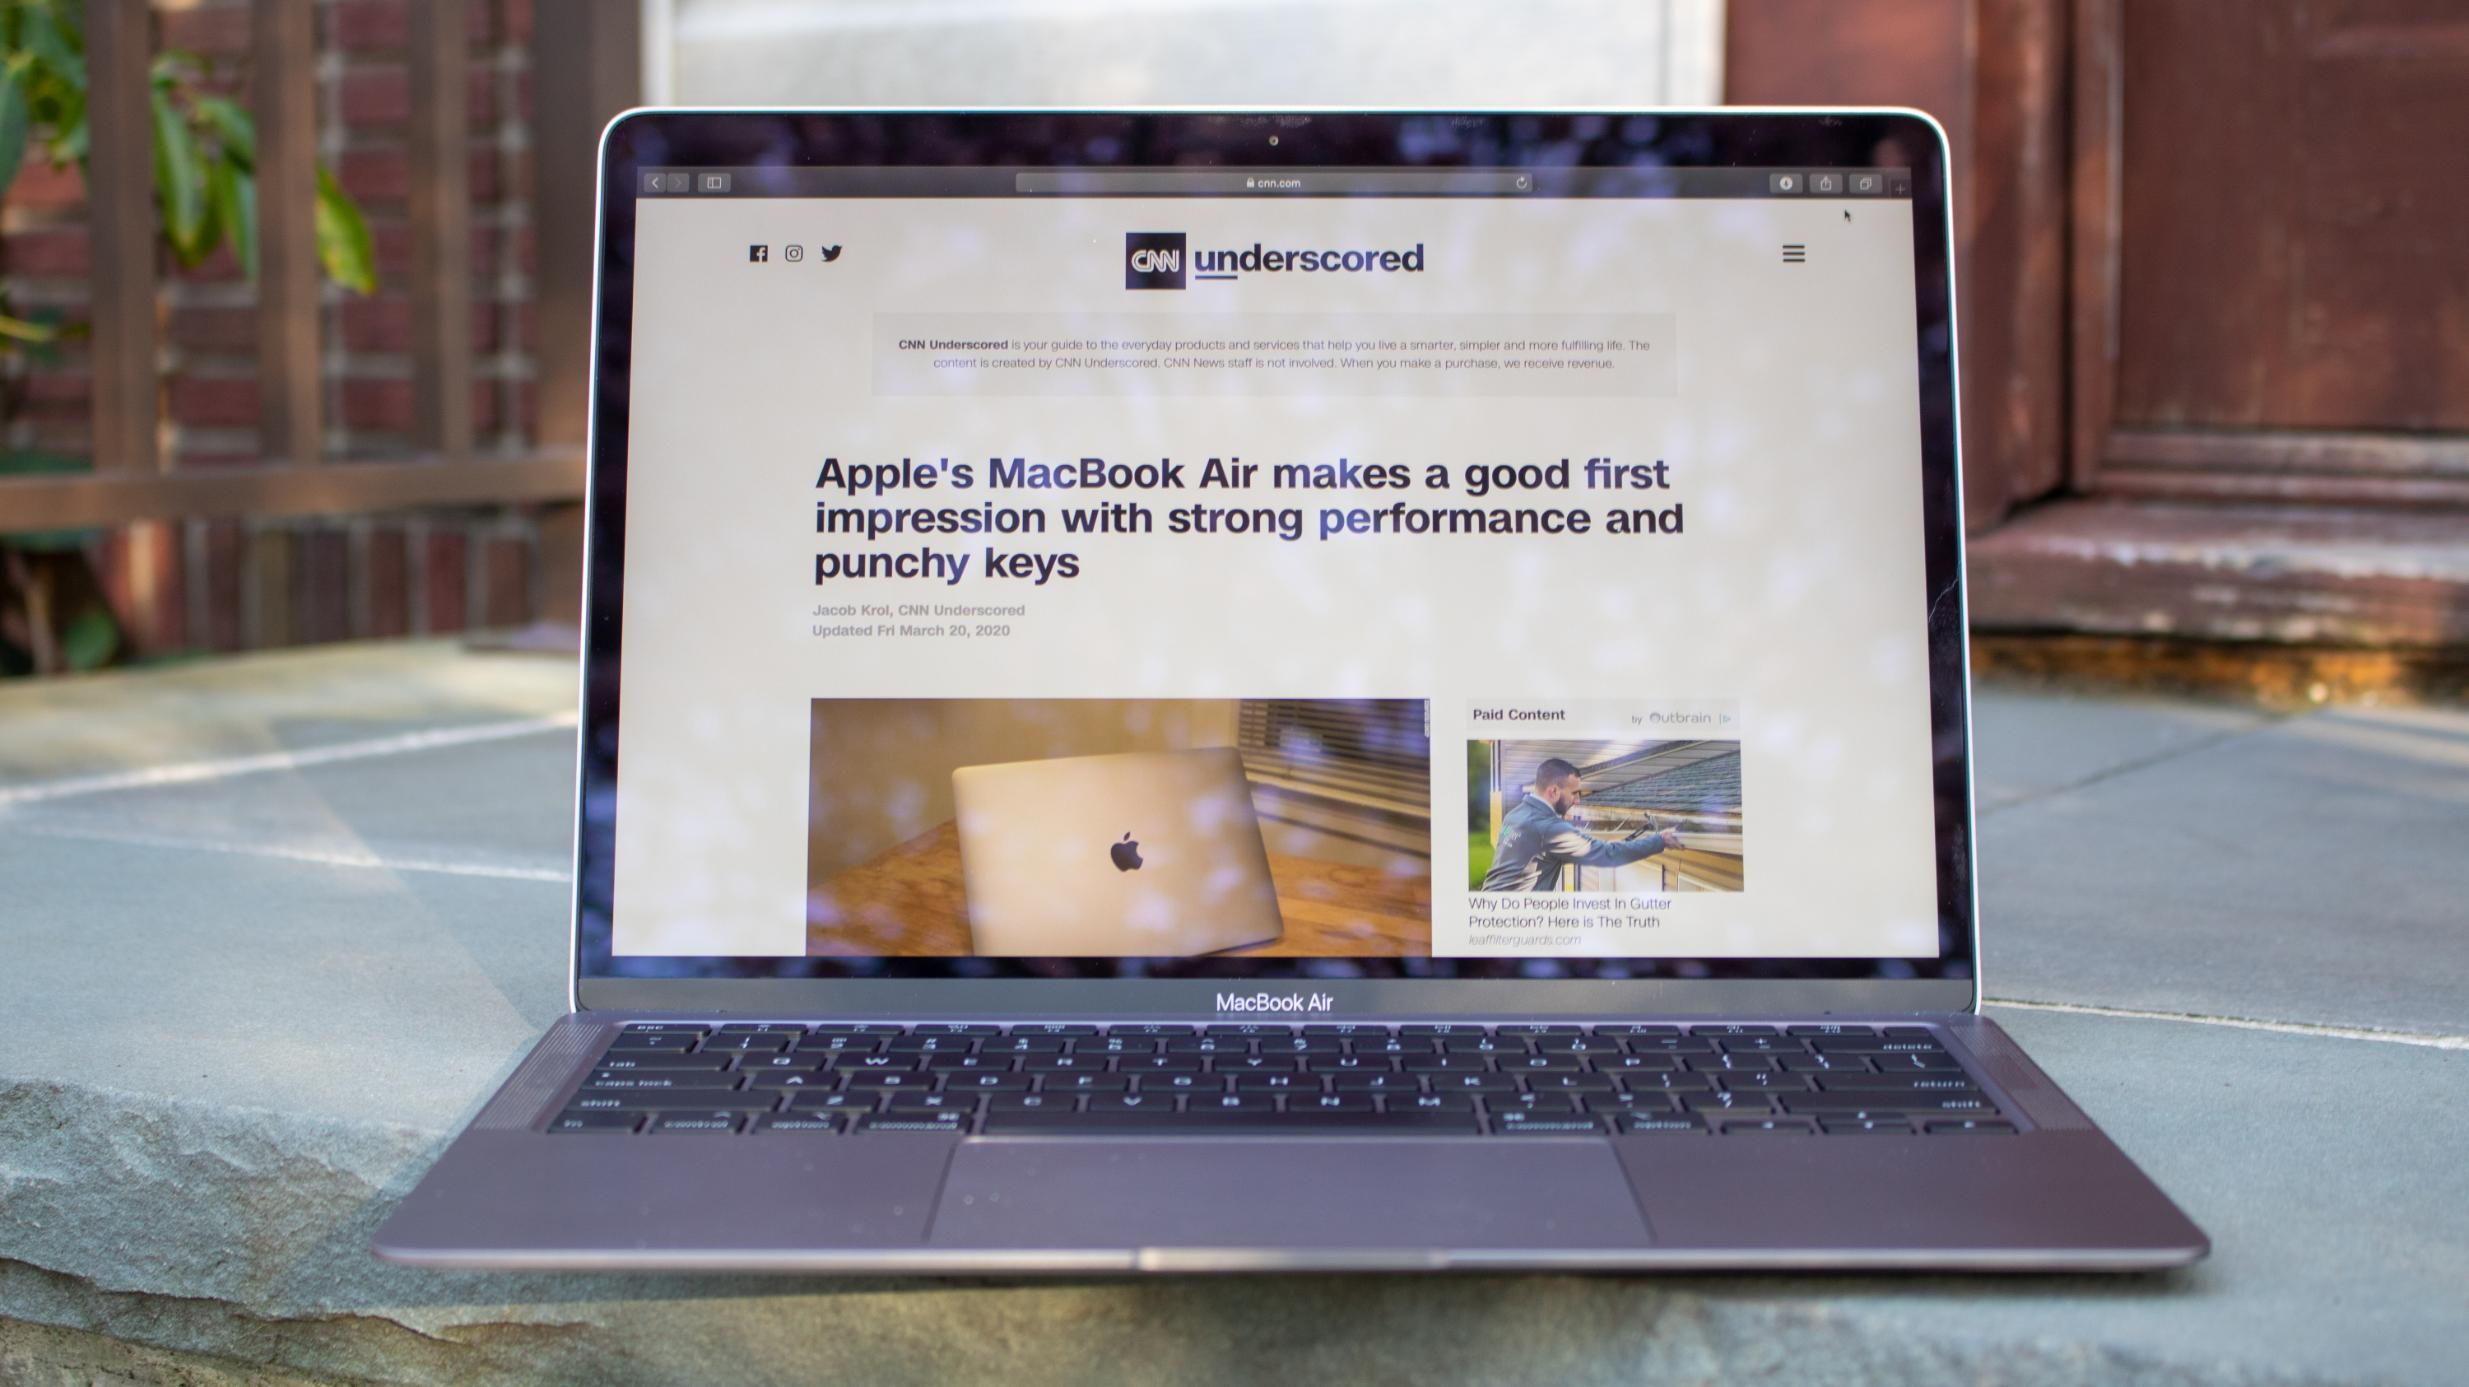 How To Improve Camera Quality On Macbook Air 2020 - ATCAMR